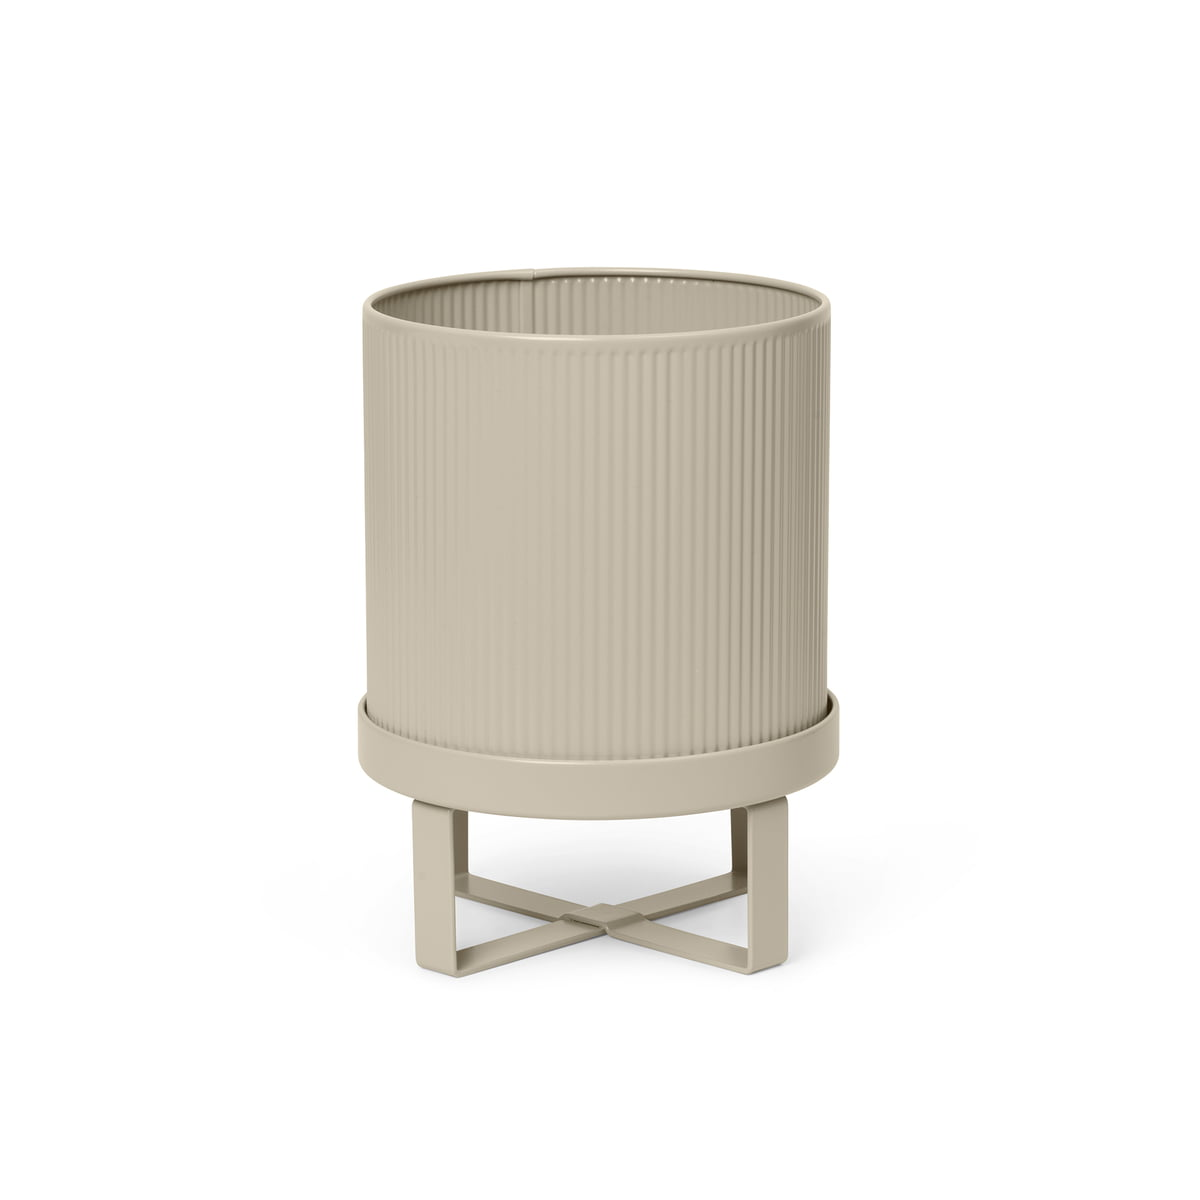 Ferm Living Bau Pot- Cashmere- Small